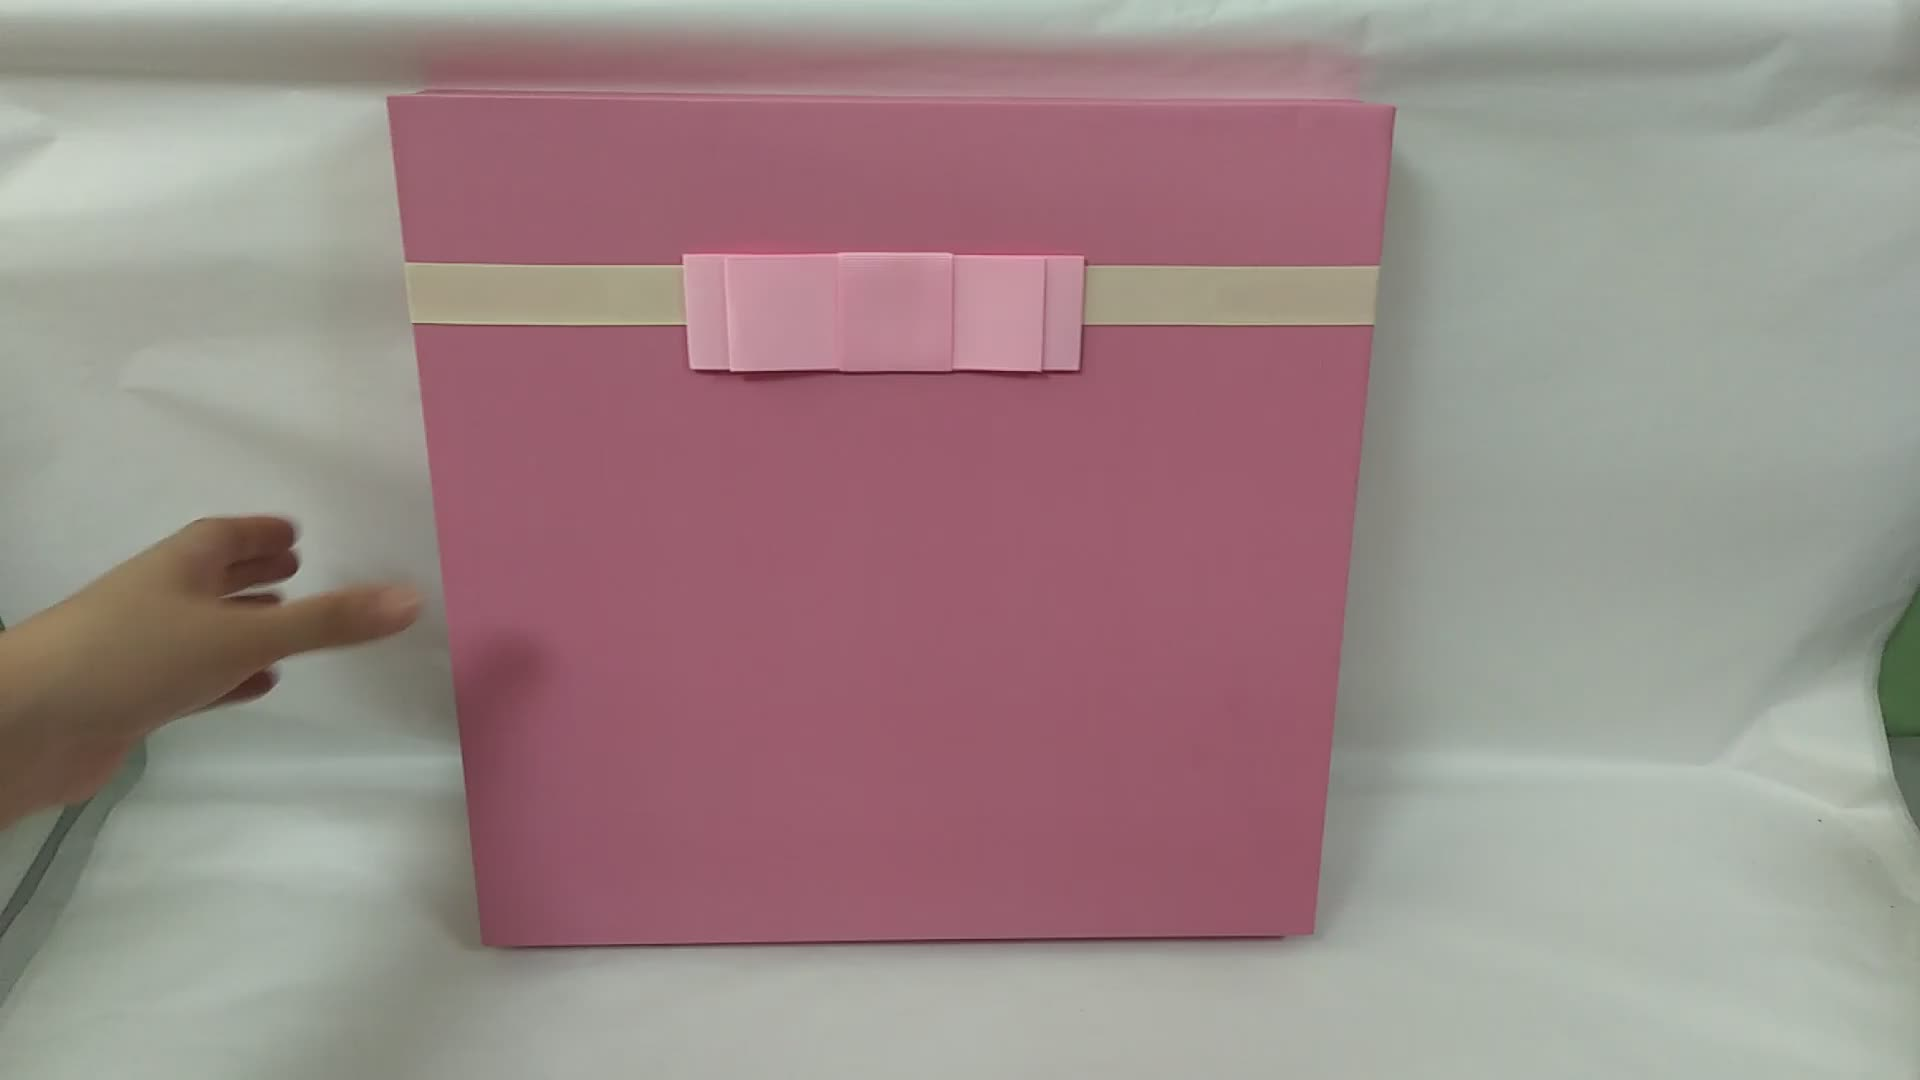 Customizable big pink cardboard large blank clothes apparel garment packaging gift box